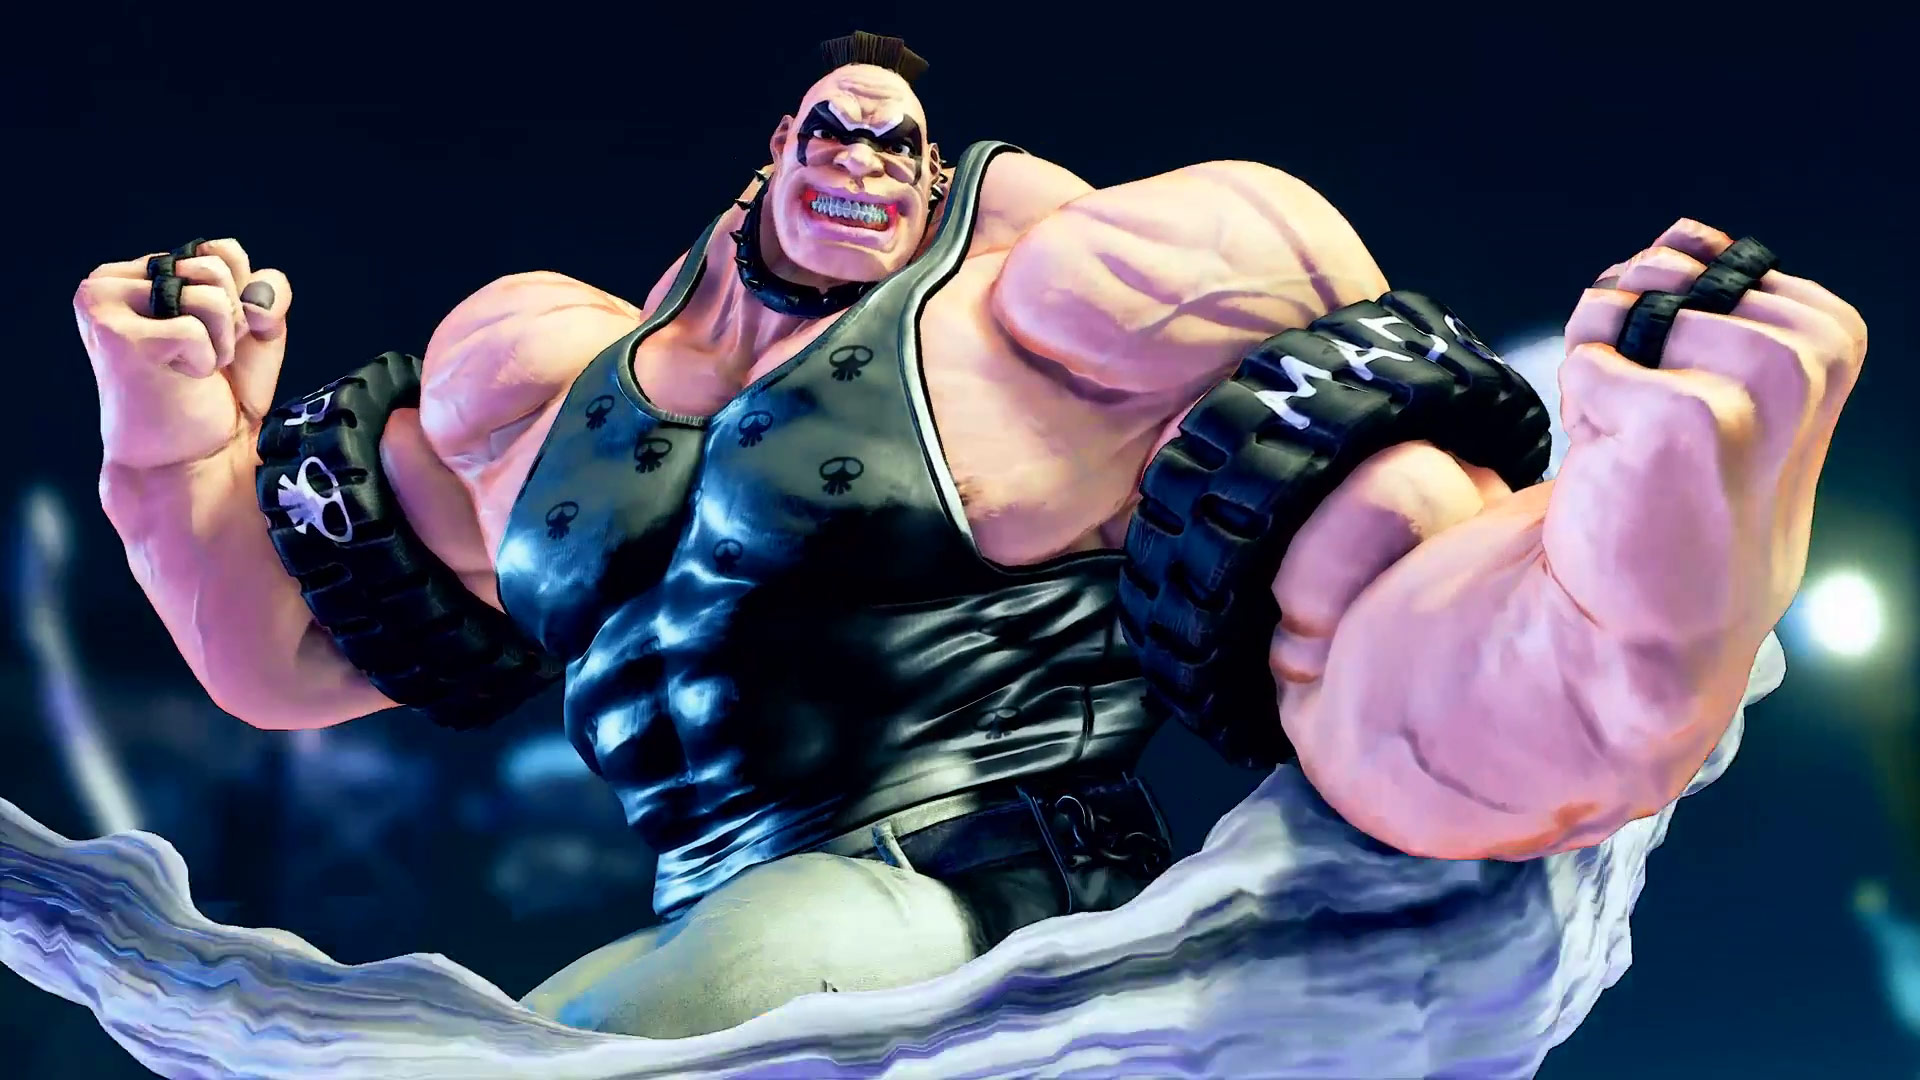 Abigail Street Fighter 5 screen shots 8 out of 11 image gallery